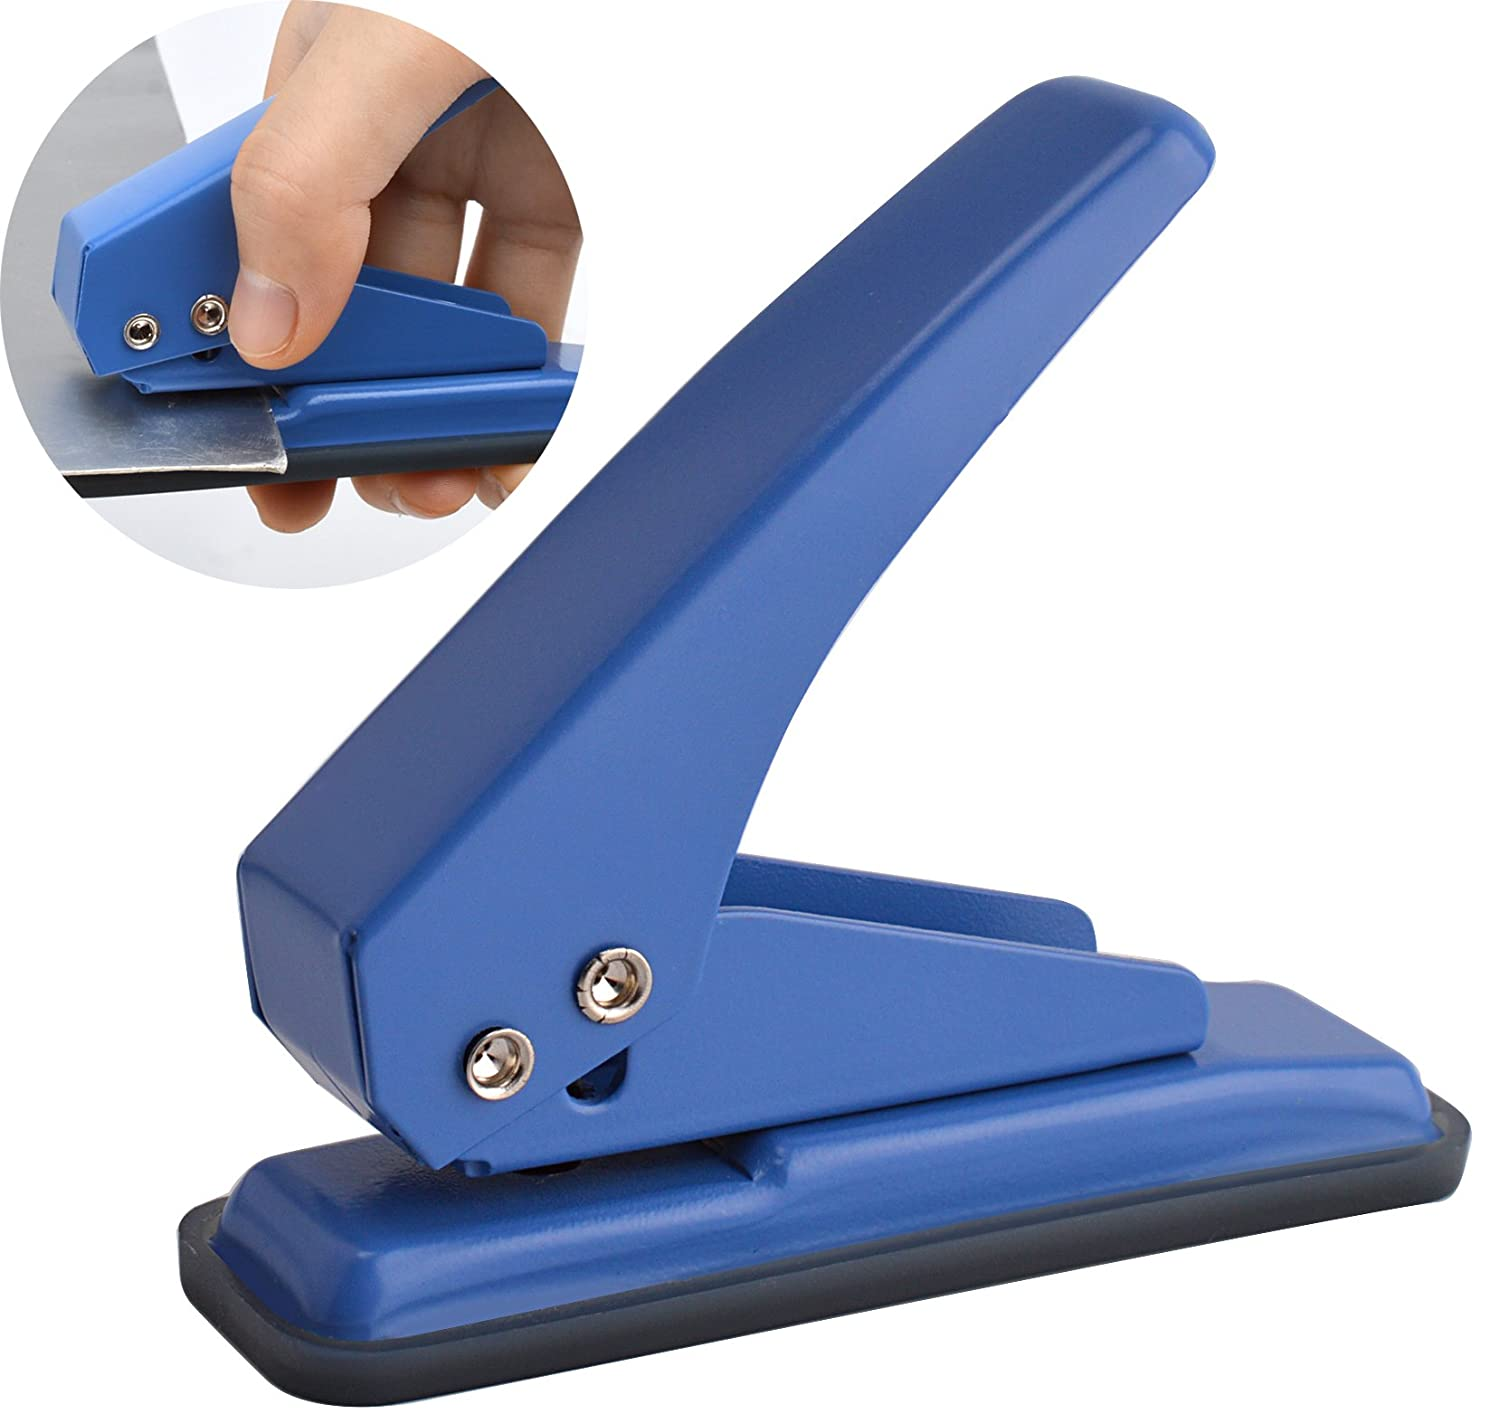 Mroco Low Force 1 Hole Punch 20 Sheets Punch Capacity 14 Holes Hole Puncher Paper Punch Hand Punch With Skid Resistant Base For Paper